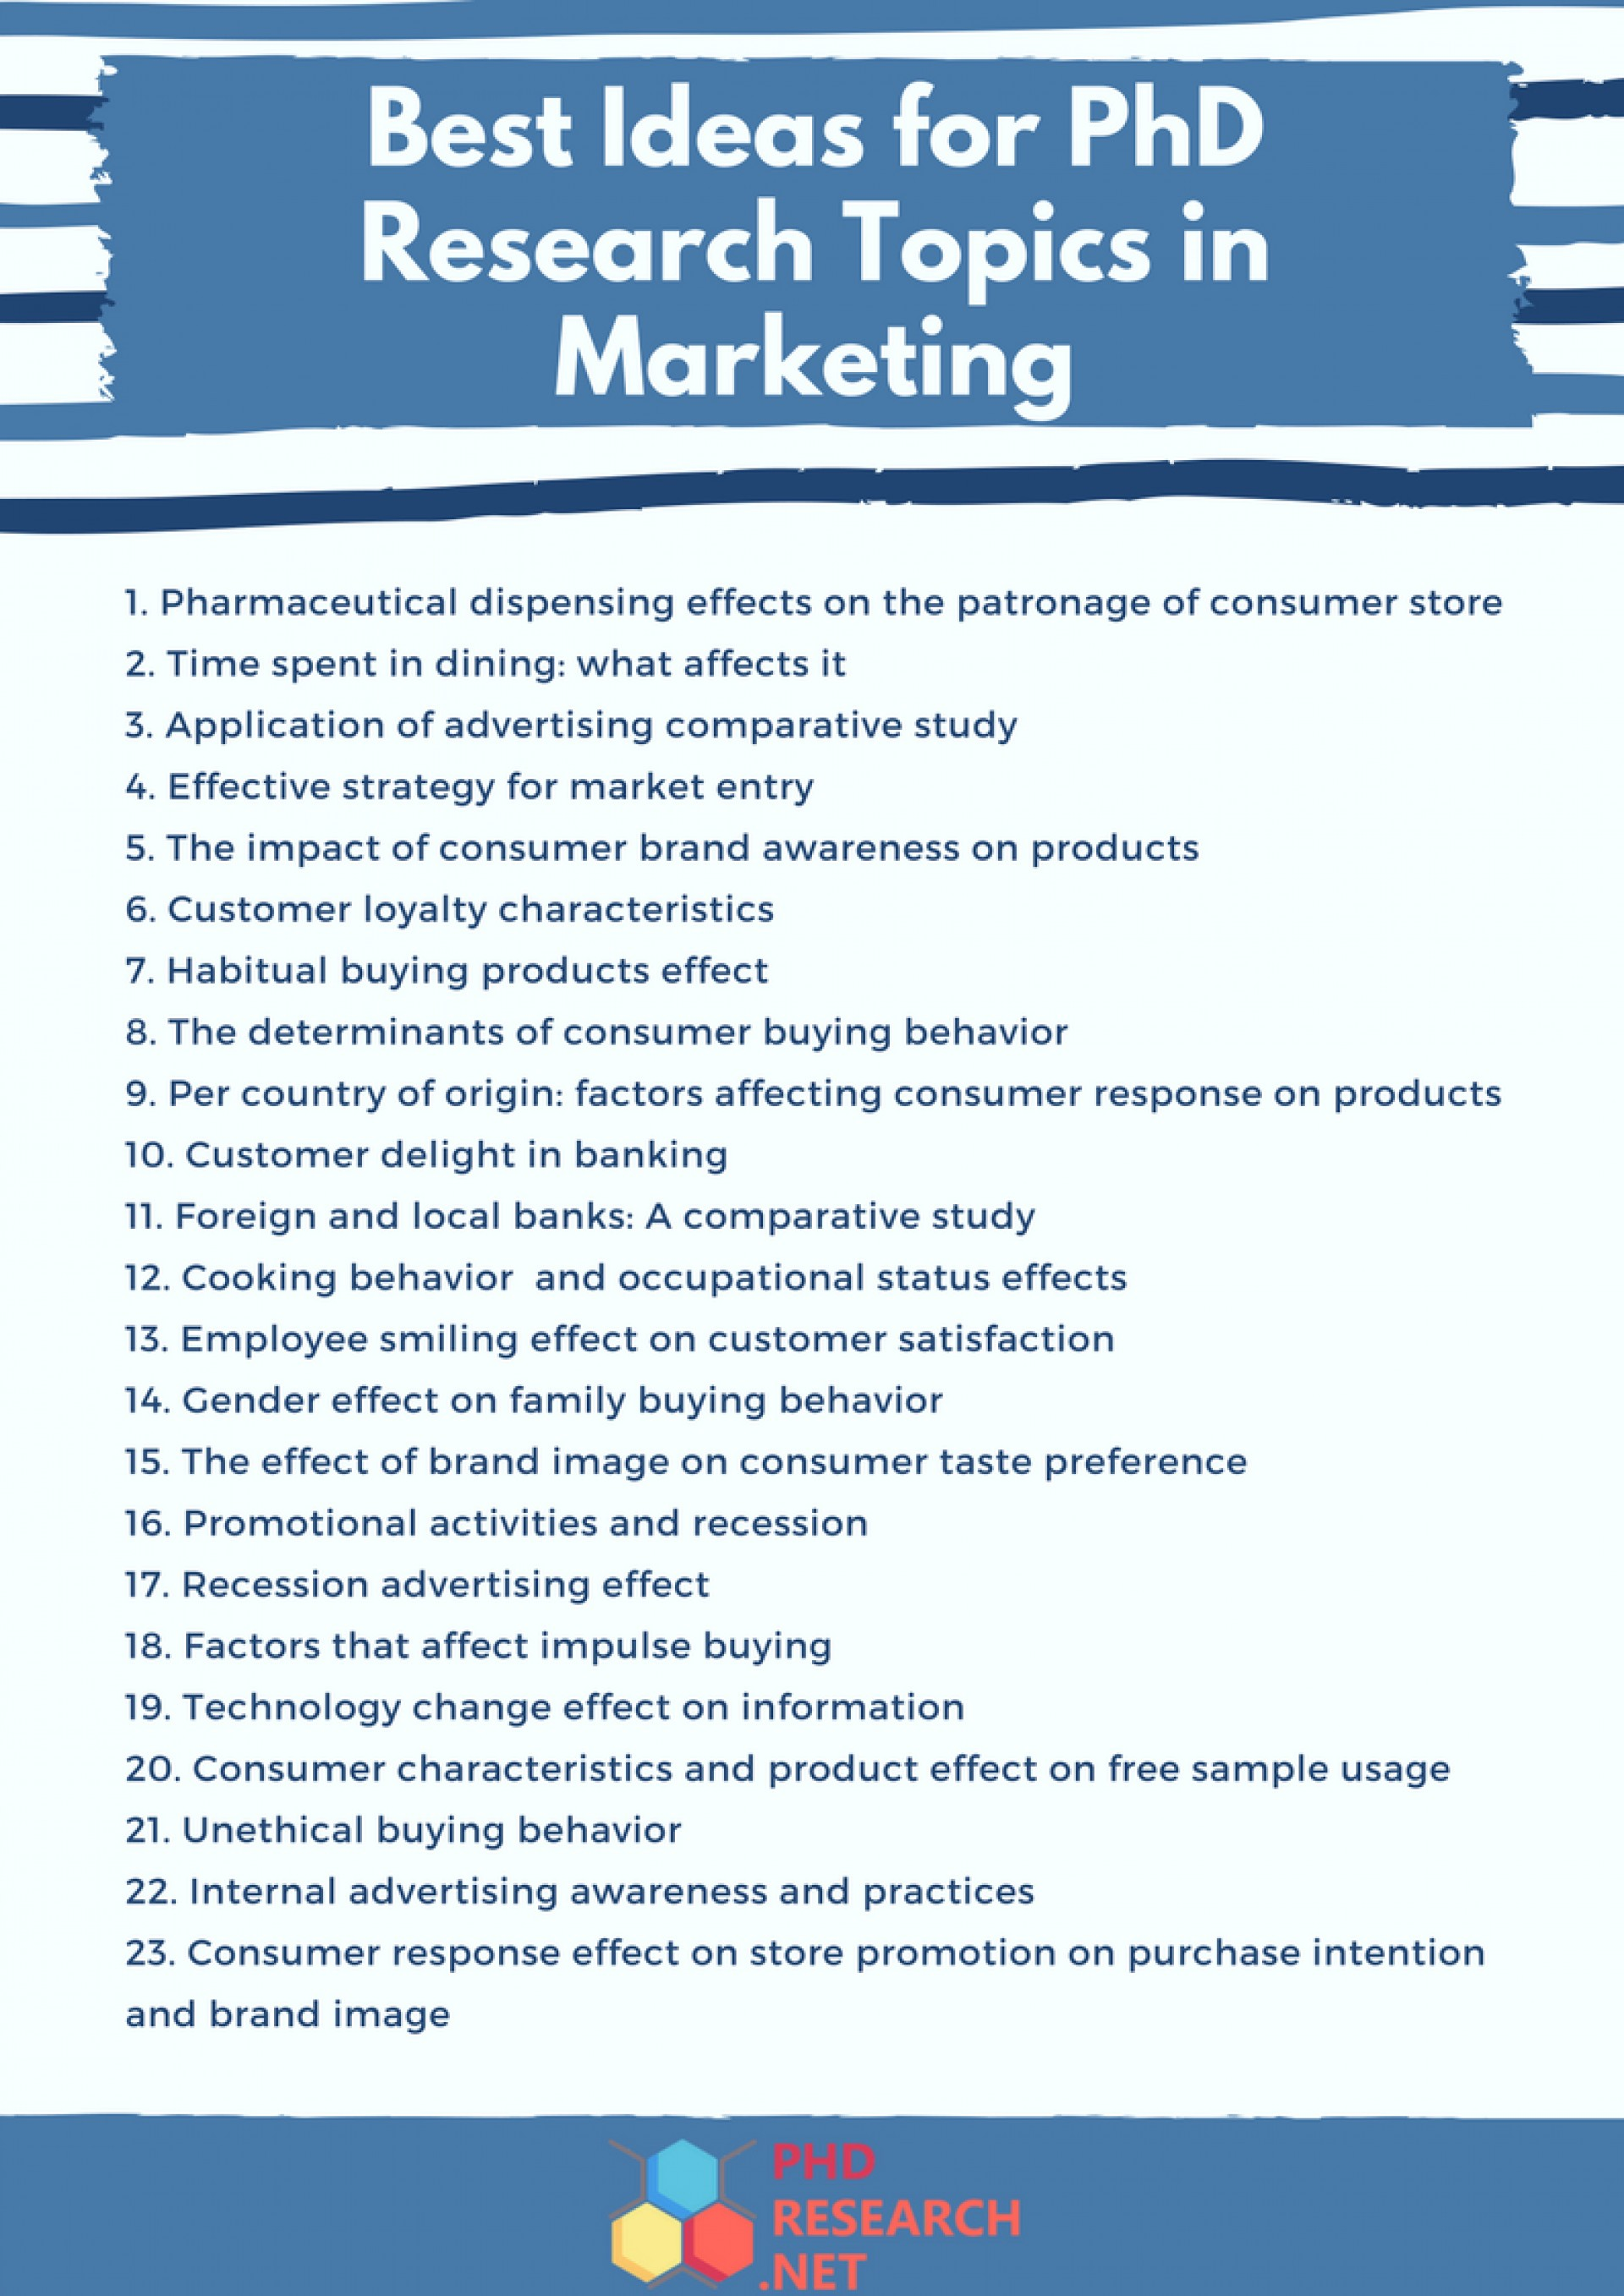 003 Best Research Paper Topics For Marketing Ideas Phd Unique 1920